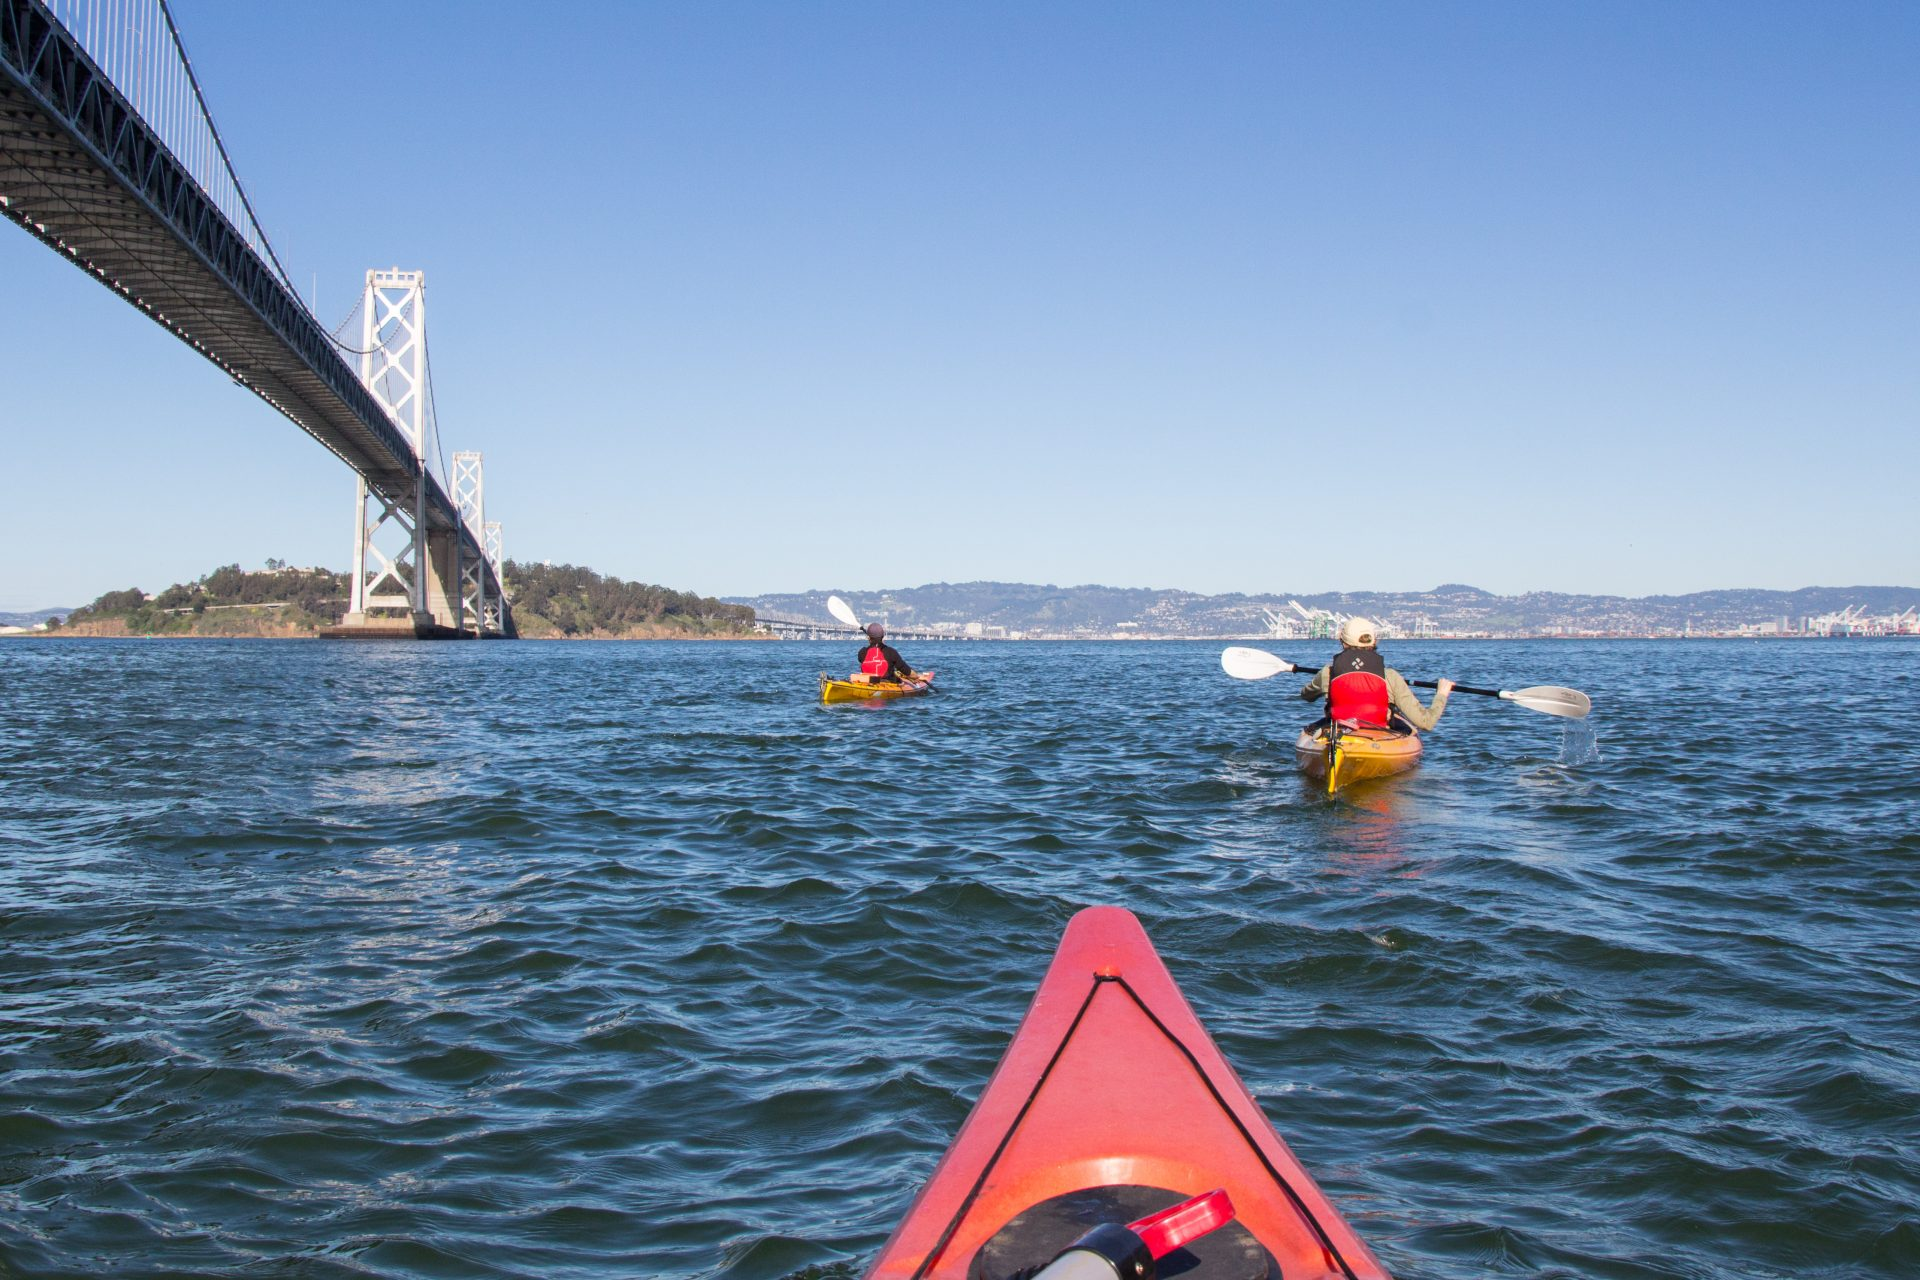 Kayak view of two paddlers, with Bay Bridge on left